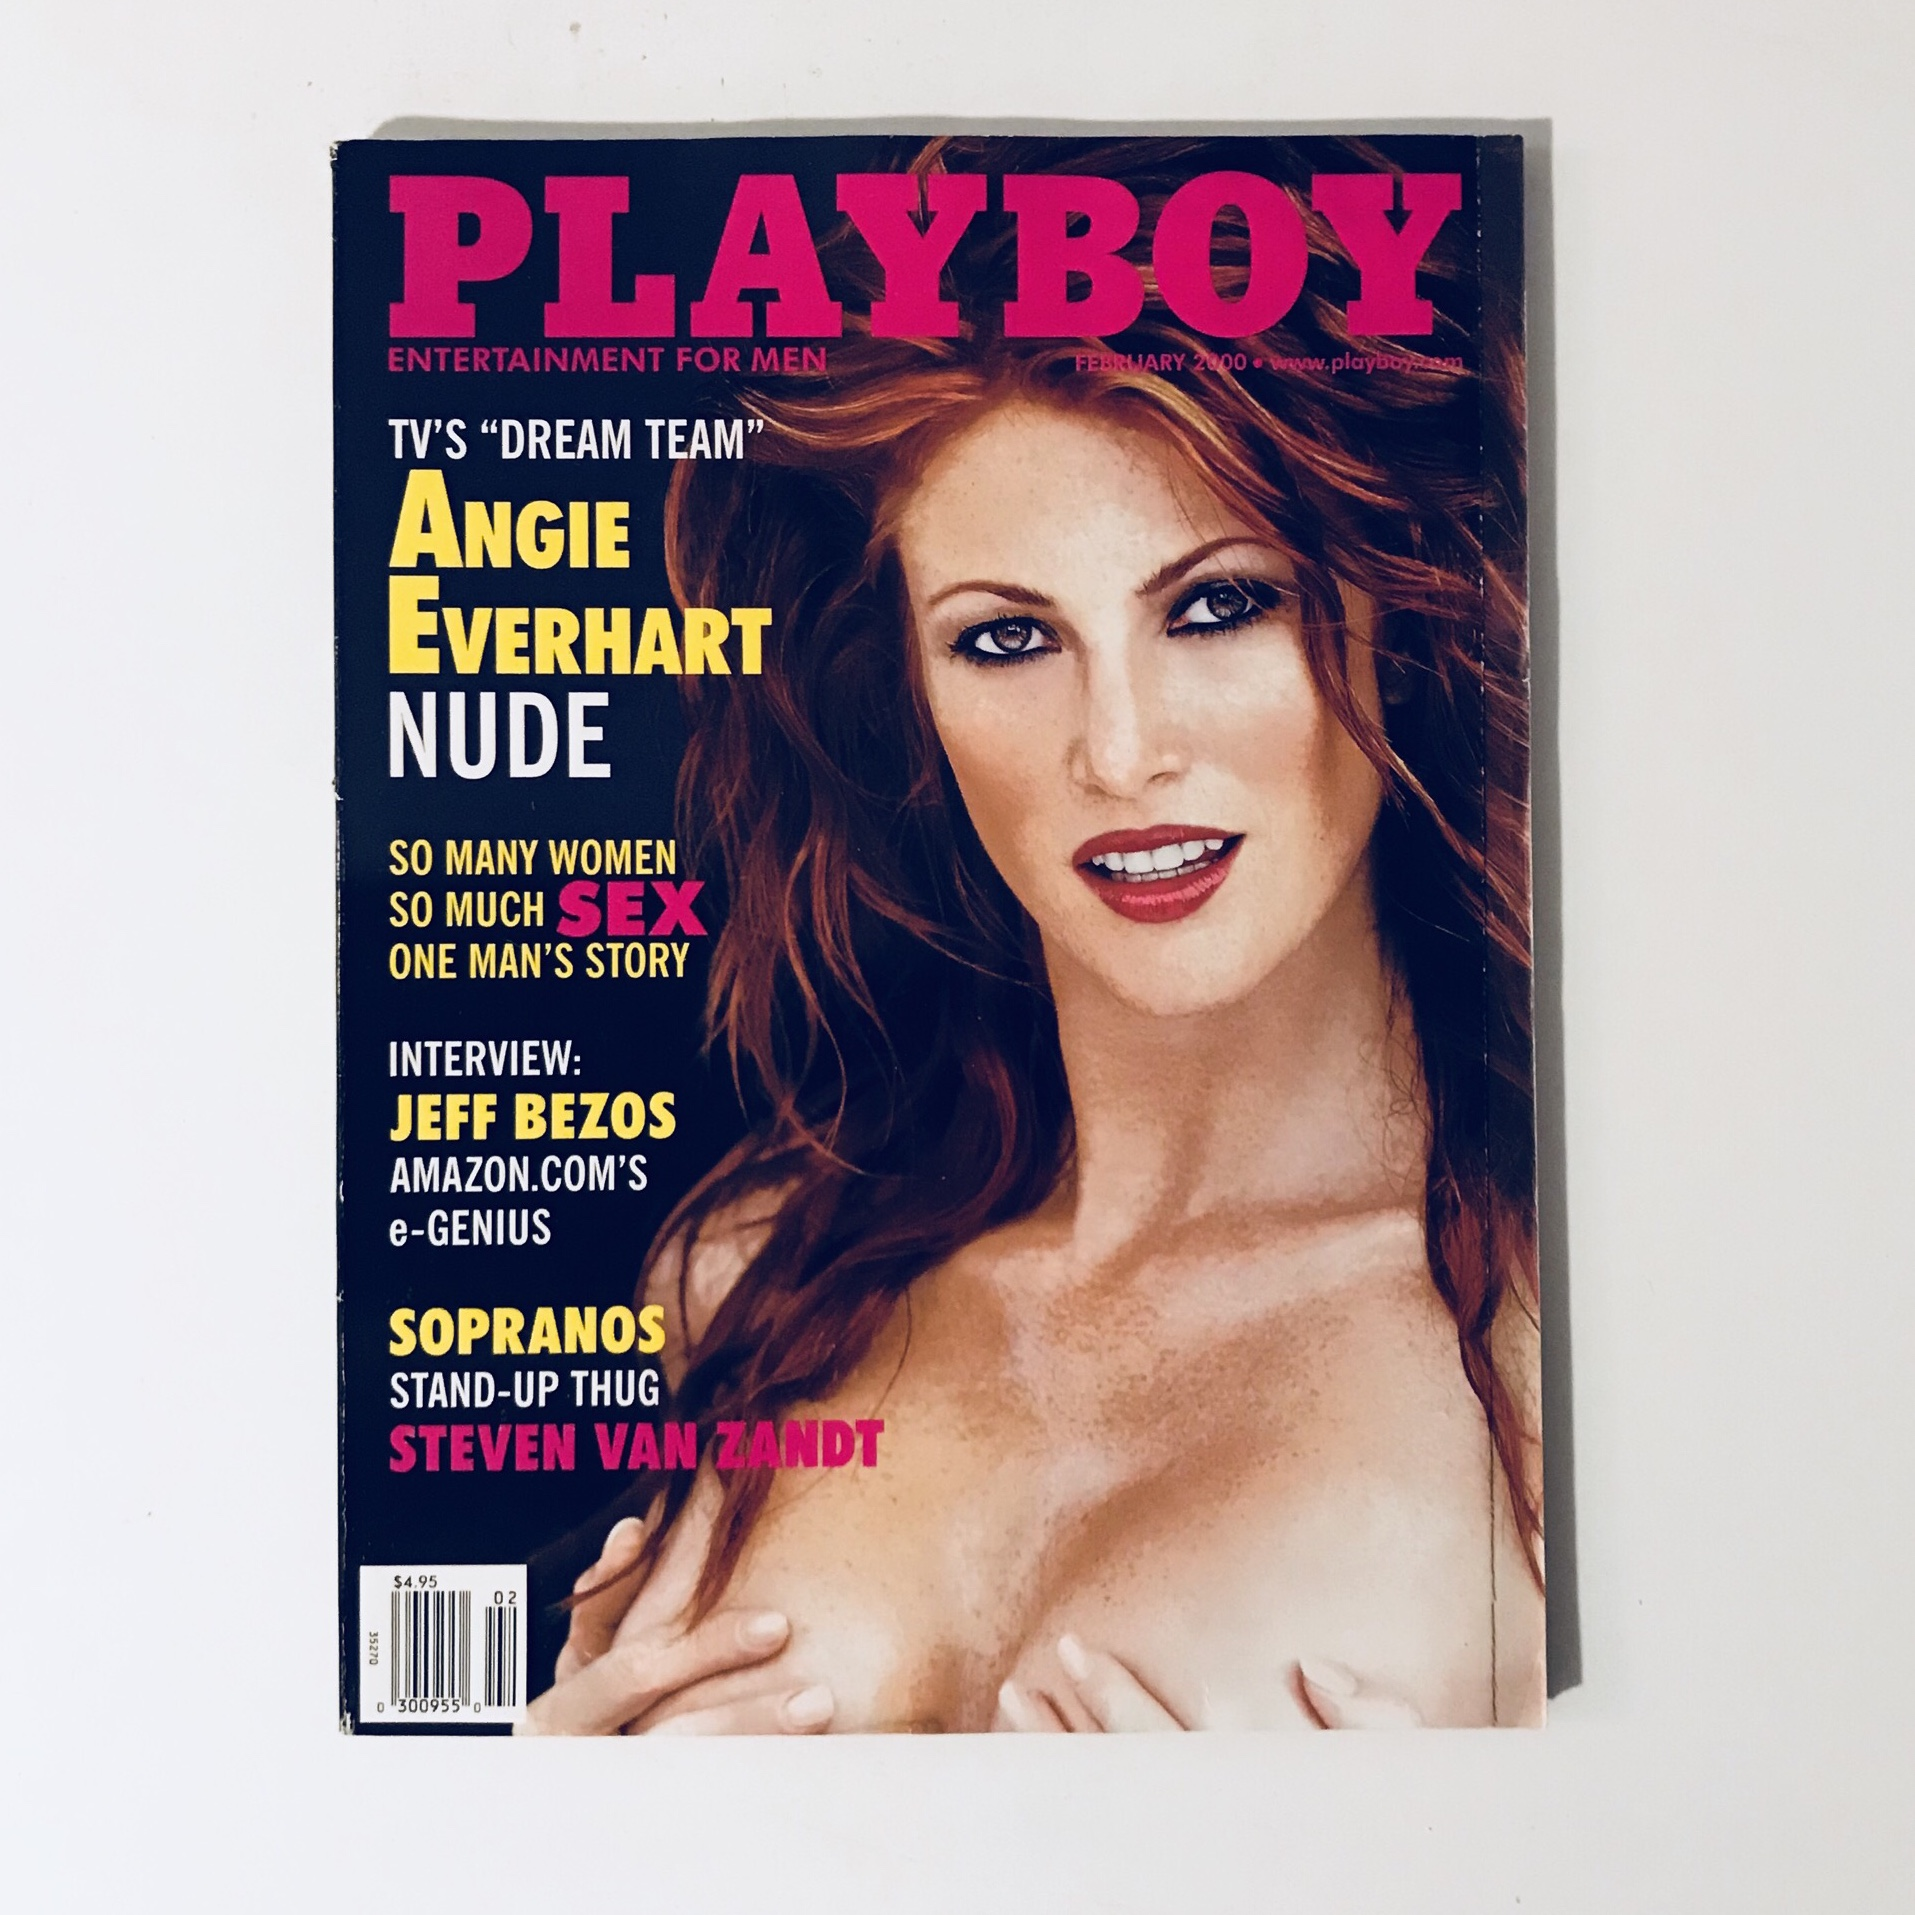 Angie Everhart Playboy free us shipping playboy magazine - february - depop